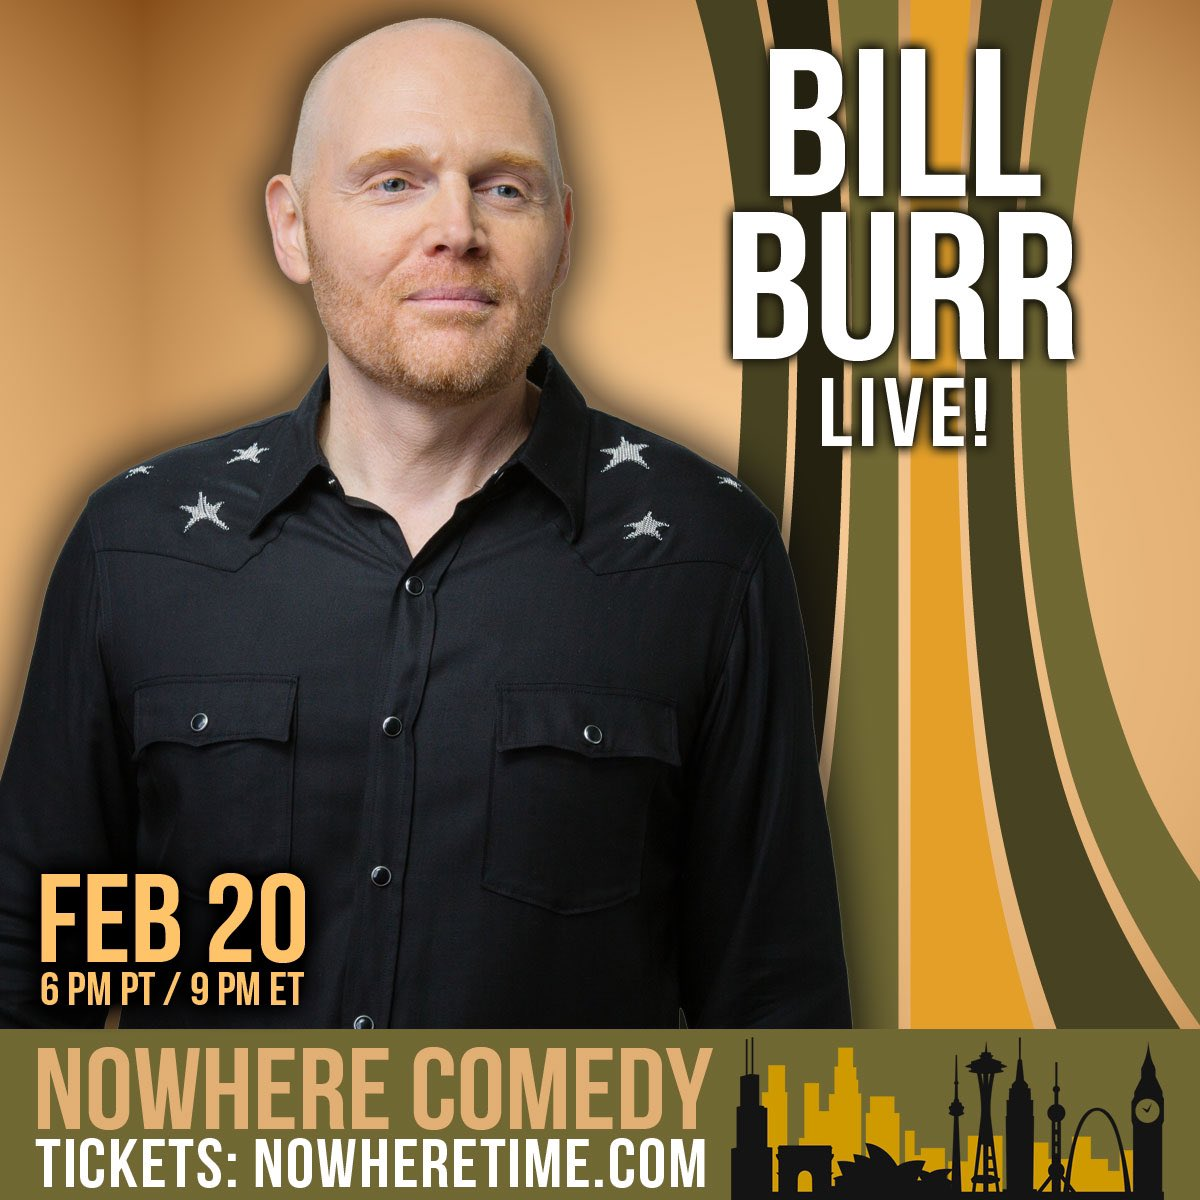 Bill Burr On Twitter Tickets For This Are Now Live Https T Co Lgludmpvhc